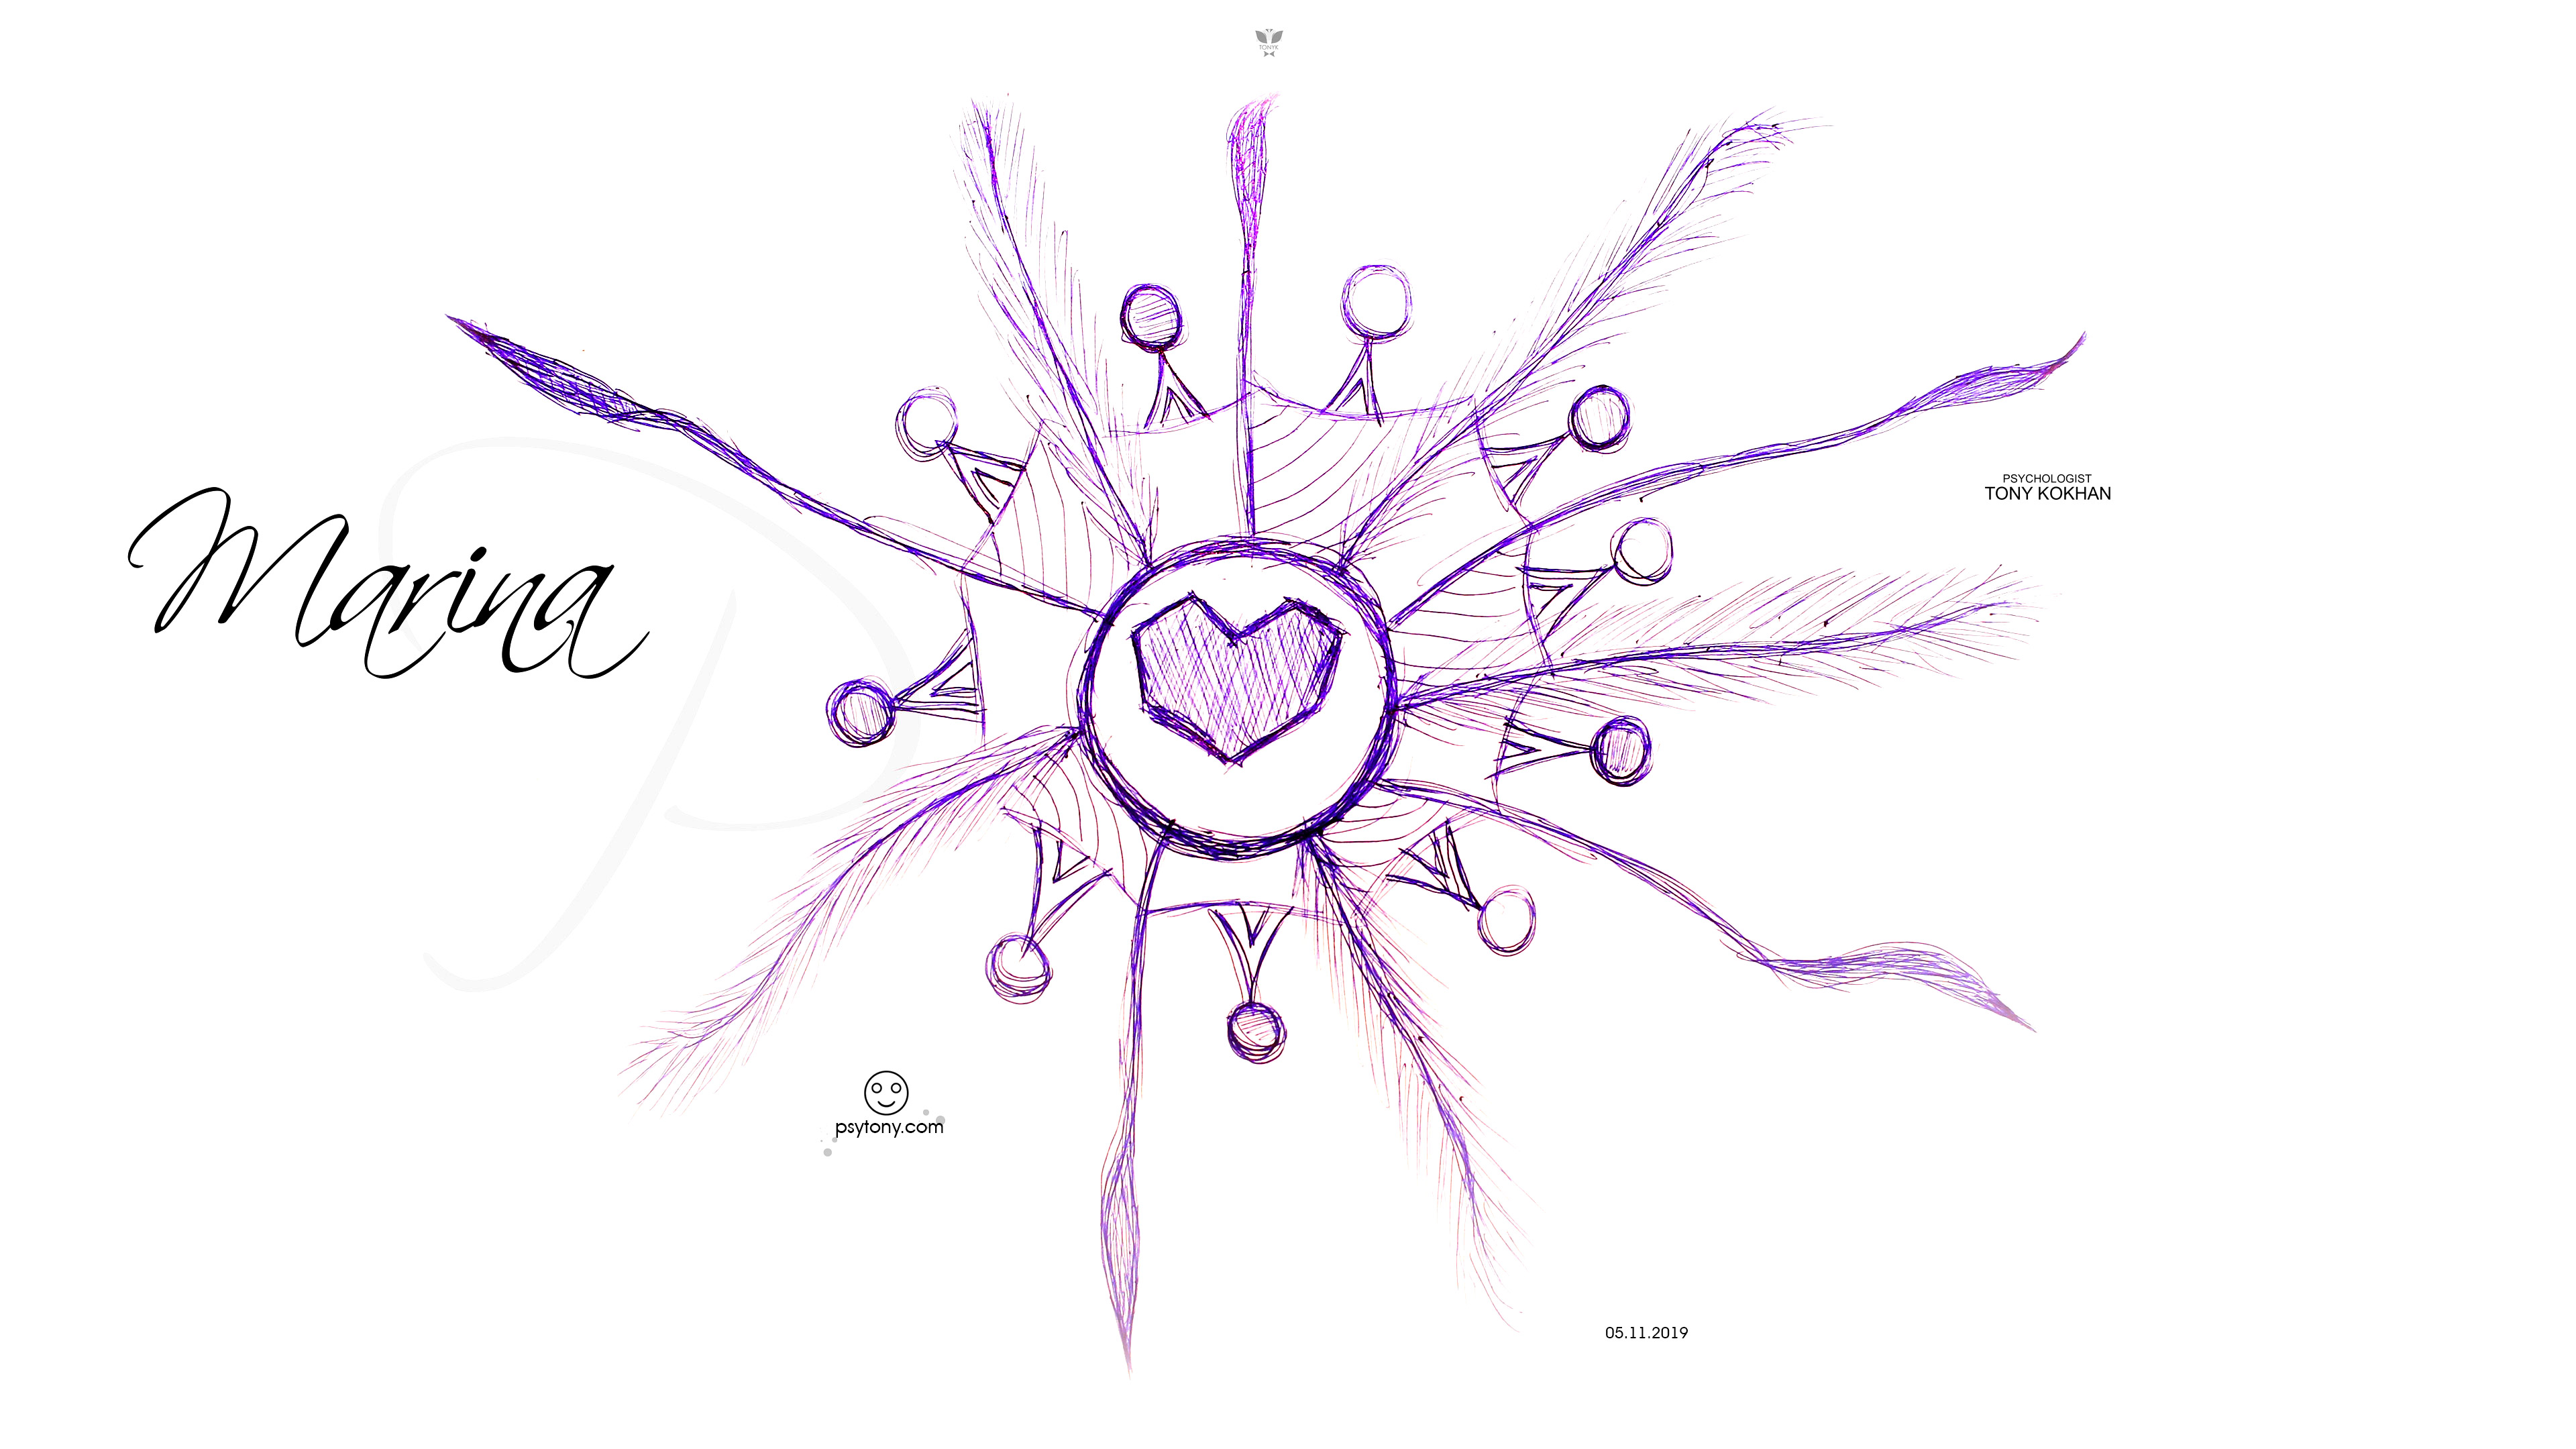 Marina-Soul-Girl-Heart-Love-Sun-Logo-Armor-Picture-Art-Drawing-with-Pen-2019-Blue-White-Colors-4K-Wallpapers-by-Psychologist-Tony-Kokhan-www.psytony.com-image